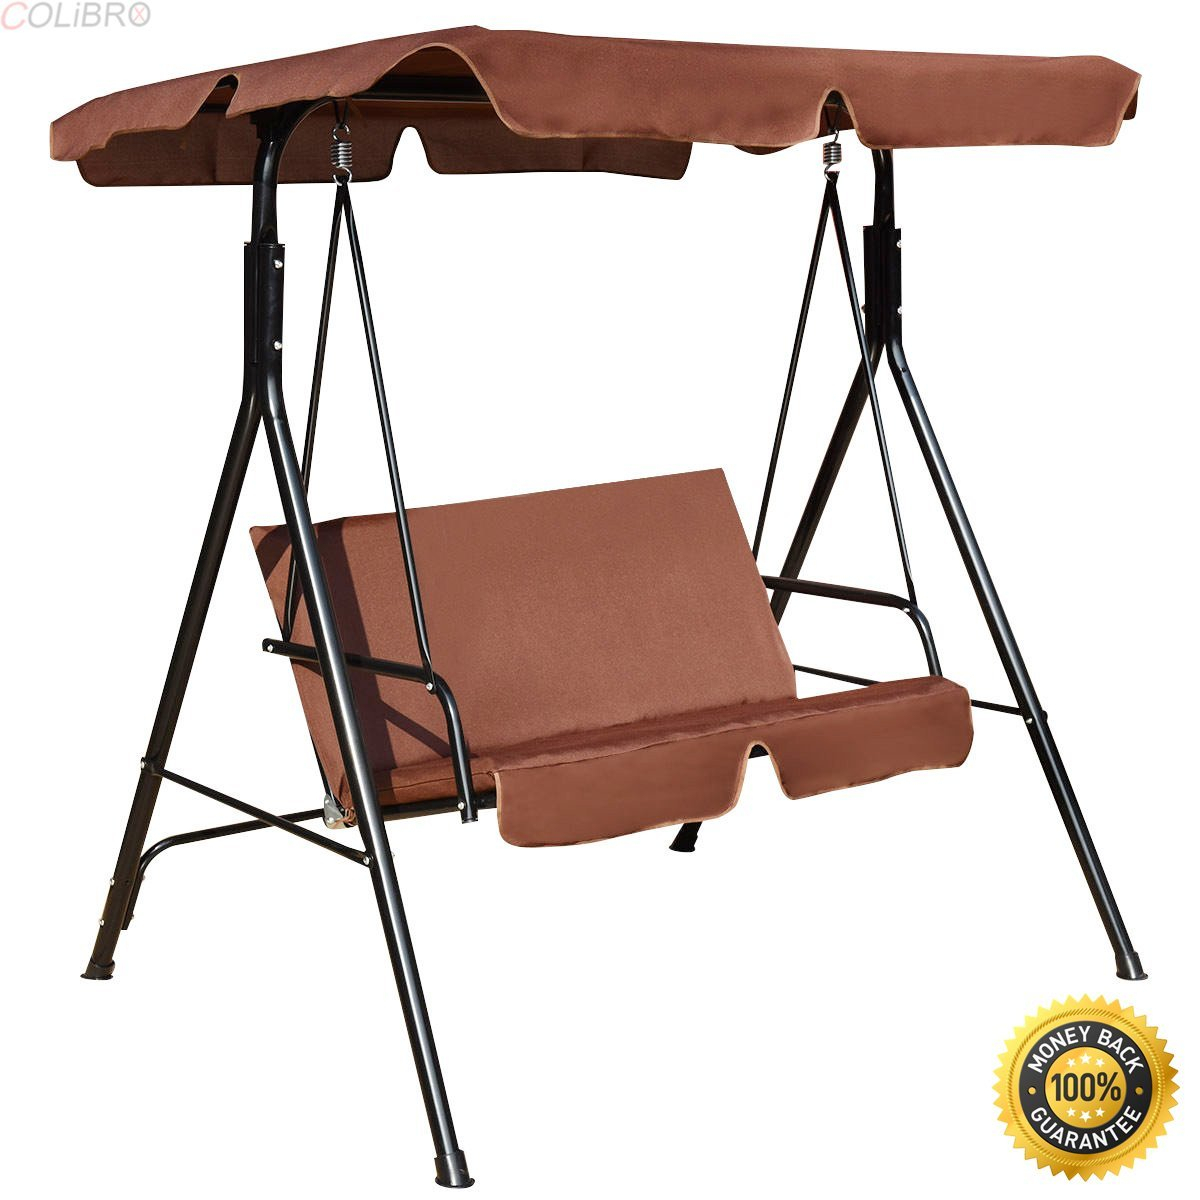 Cheap Lowes 3 Person Swing, Find Lowes 3 Person Swing Deals With Regard To 3 Seats Patio Canopy Swing Gliders Hammock Cushioned Steel Frame (Image 4 of 25)